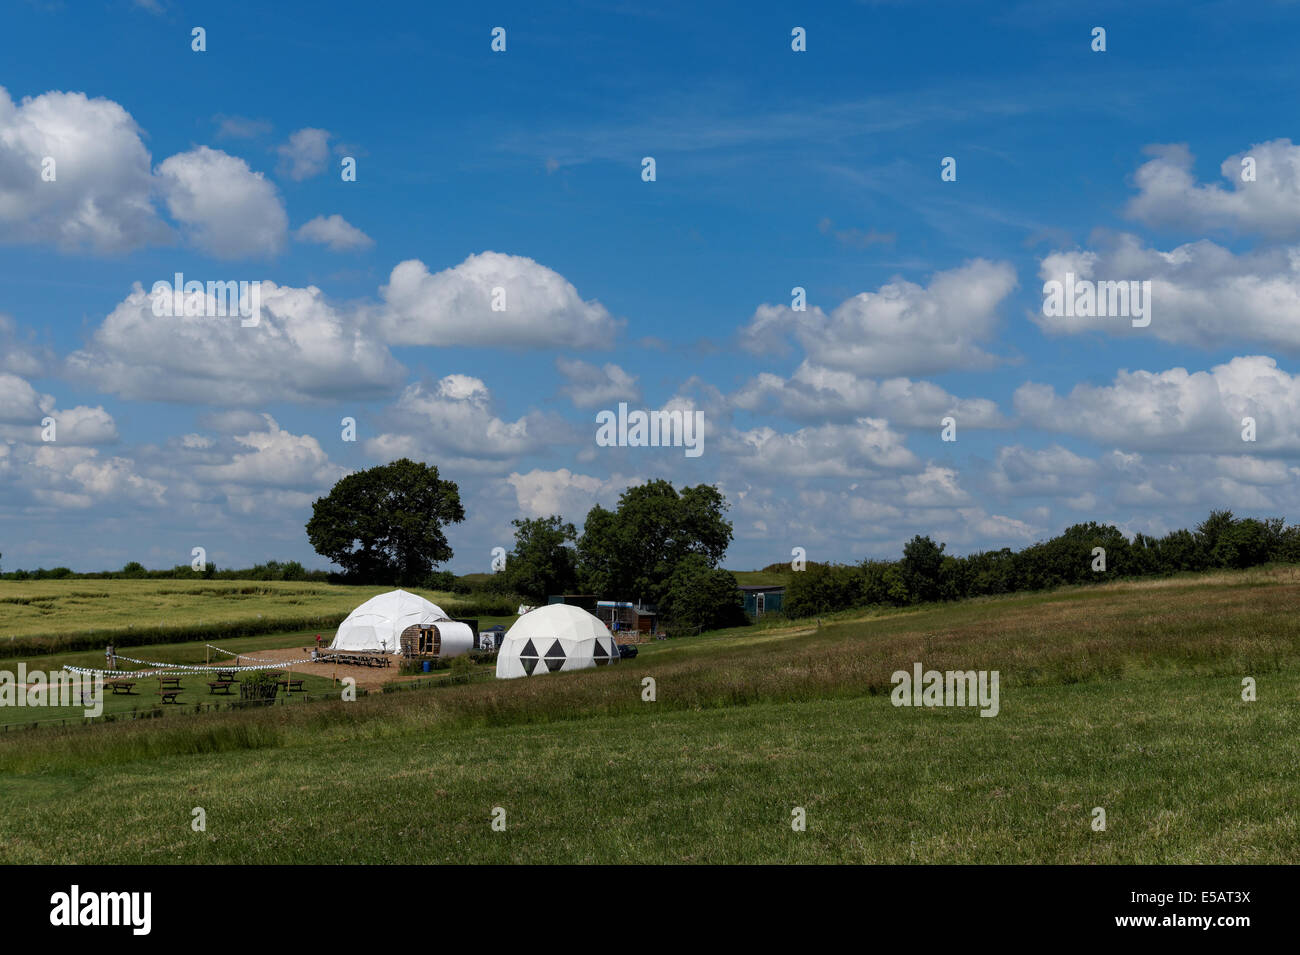 Glampsite in England - Stock Image